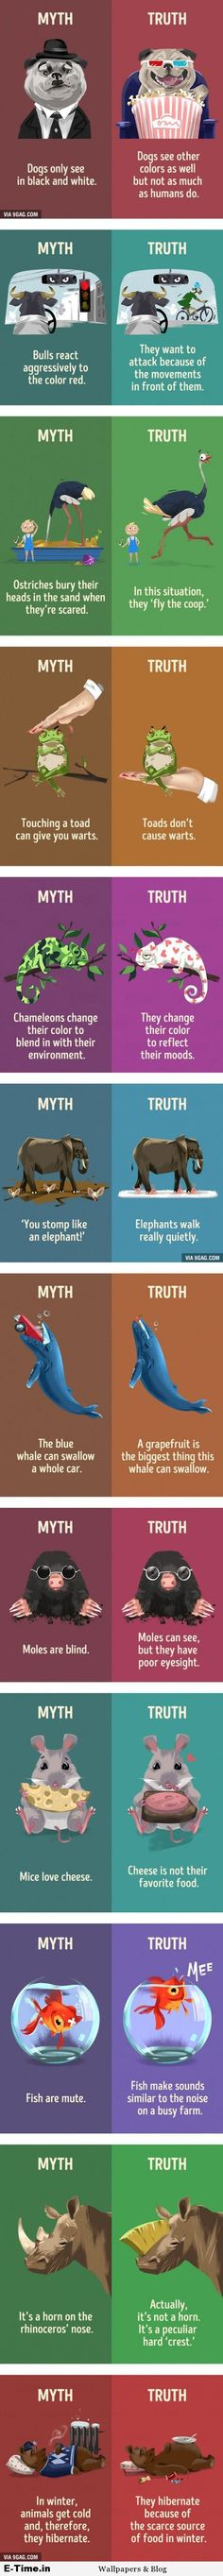 12 Myths And Truths About Animals